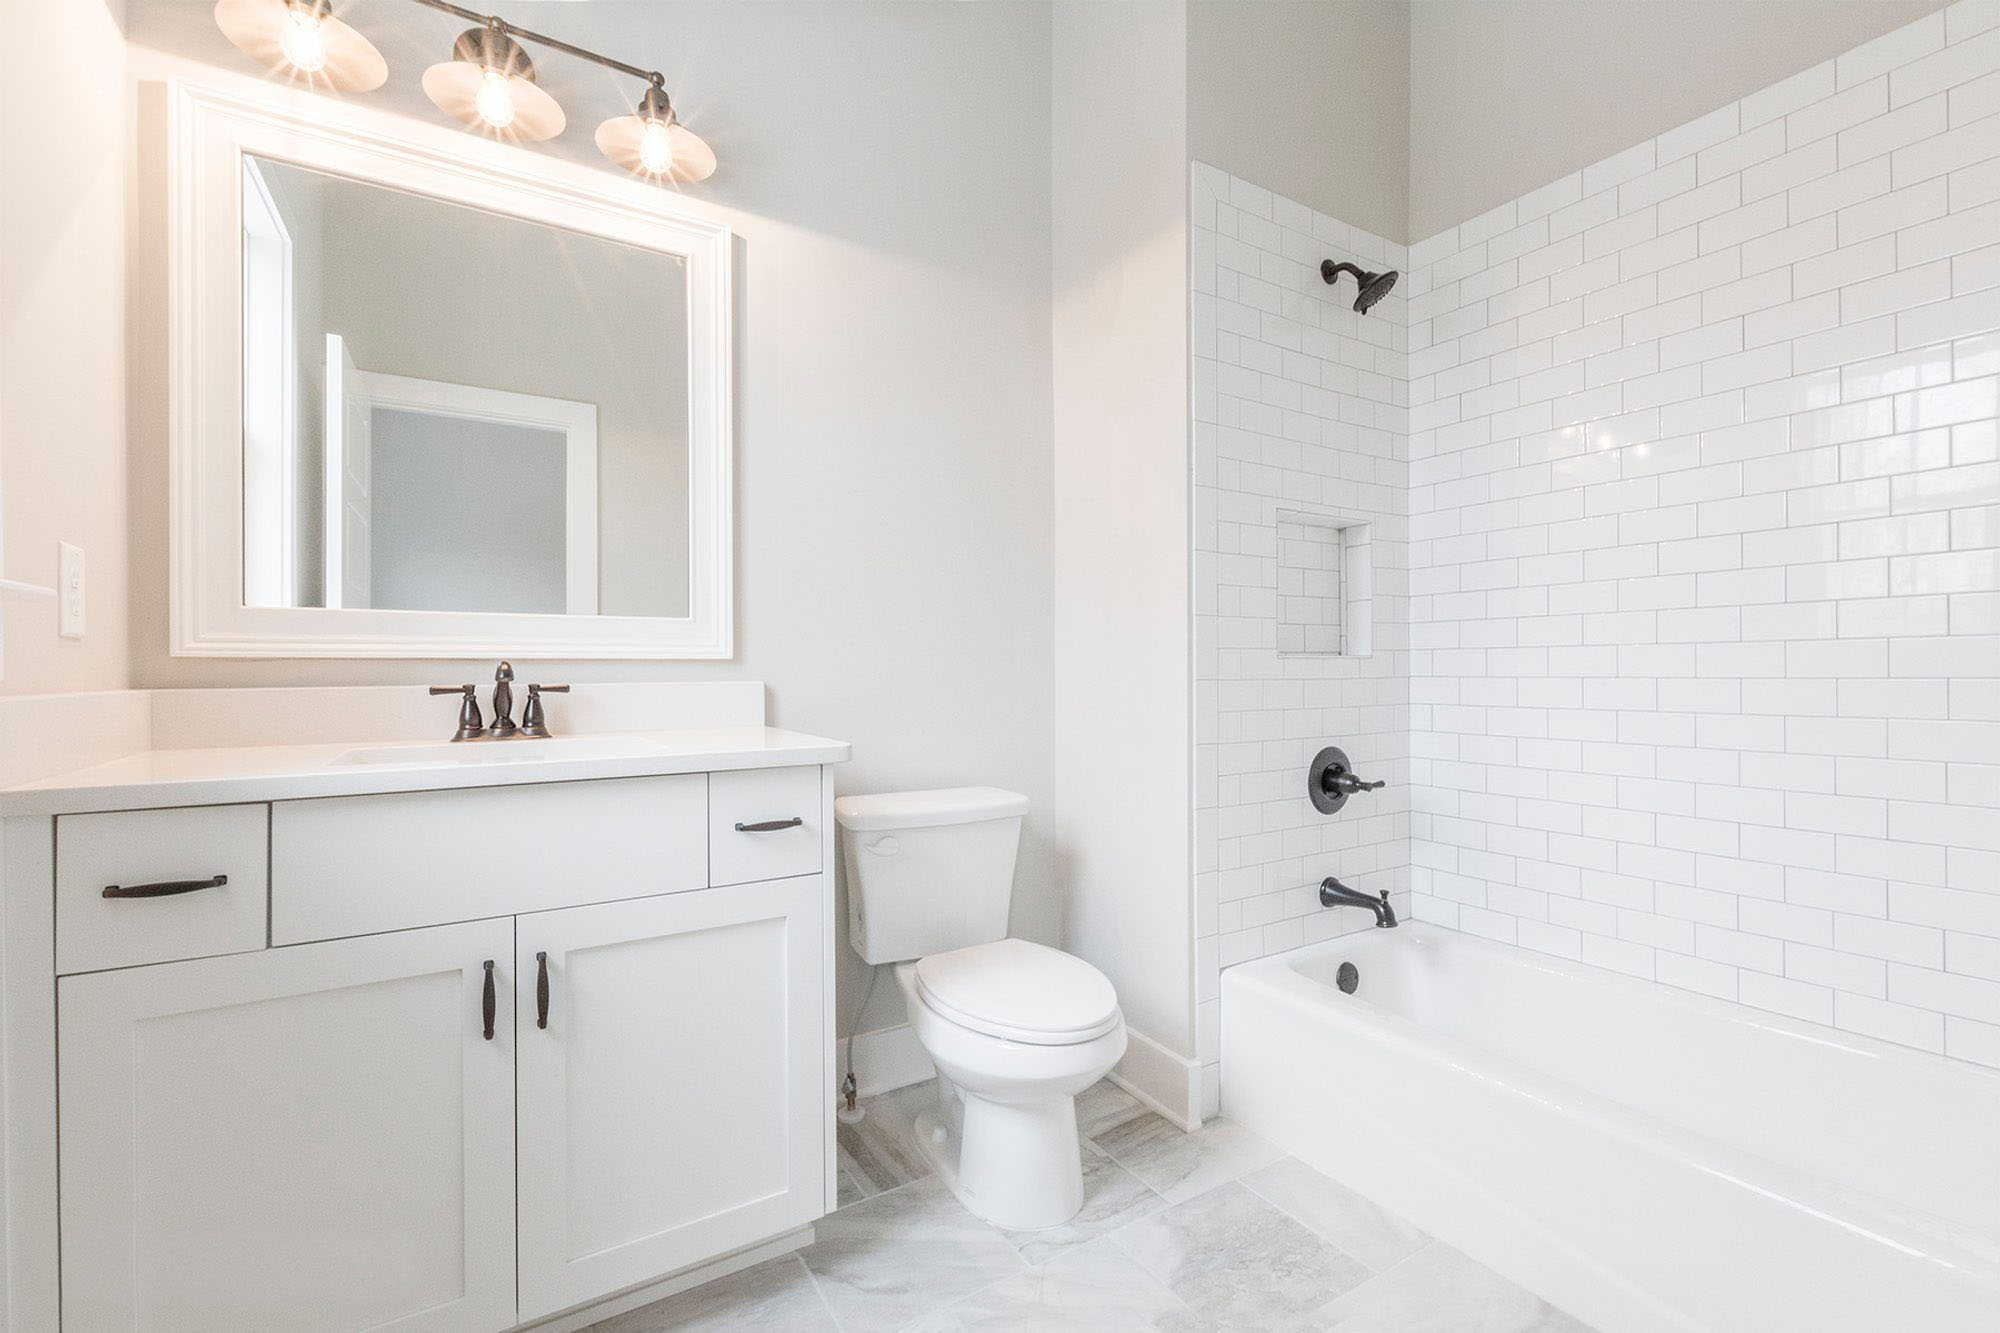 beautiful all white full bathroom with white subway tile shower, shaker style white vanity and black hardware.